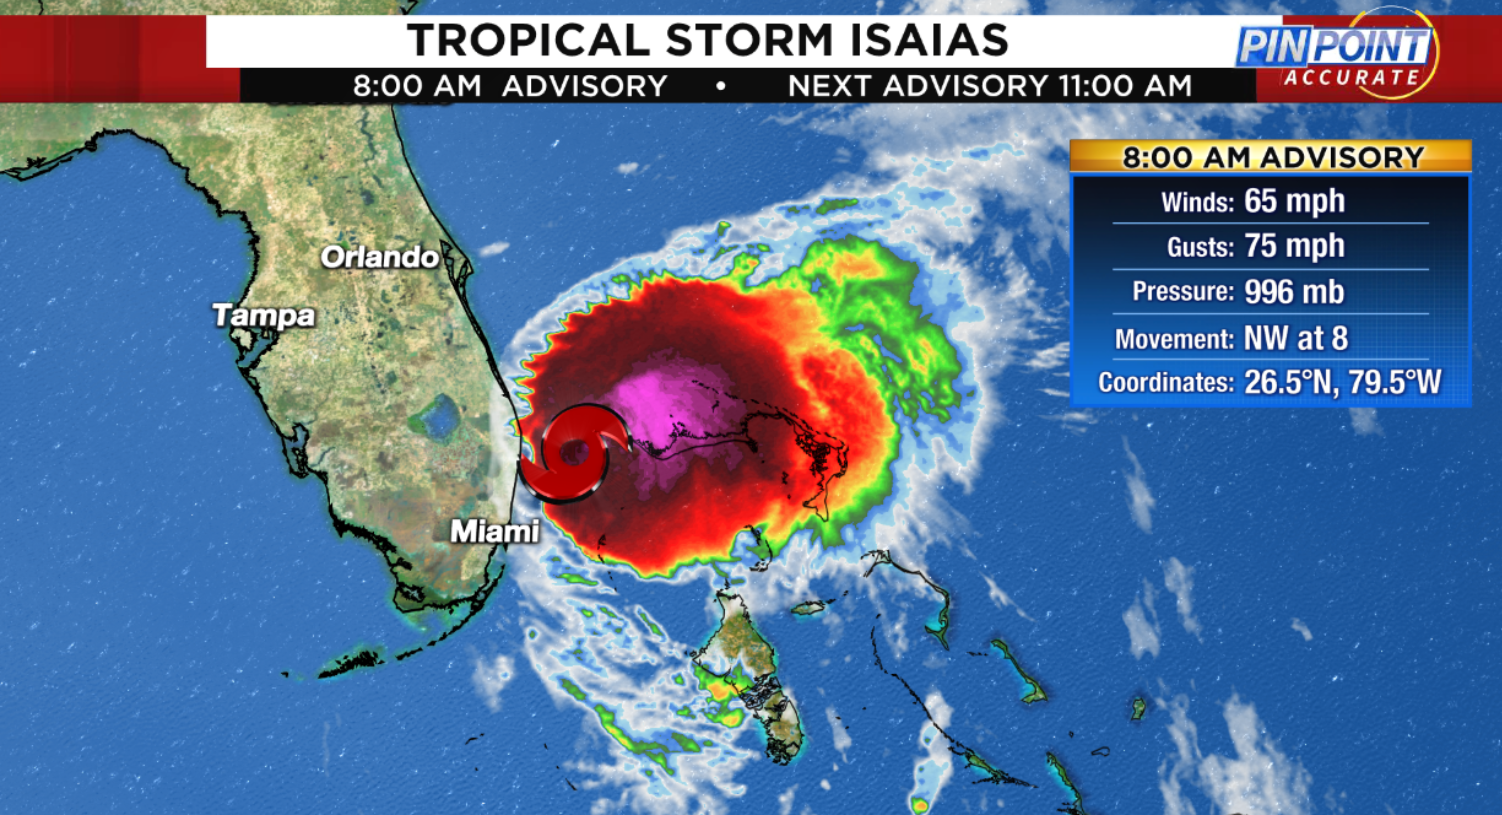 Live Track Forecast Cone Computer Models Updates As Tropical Storm Isaias Approaches Florida